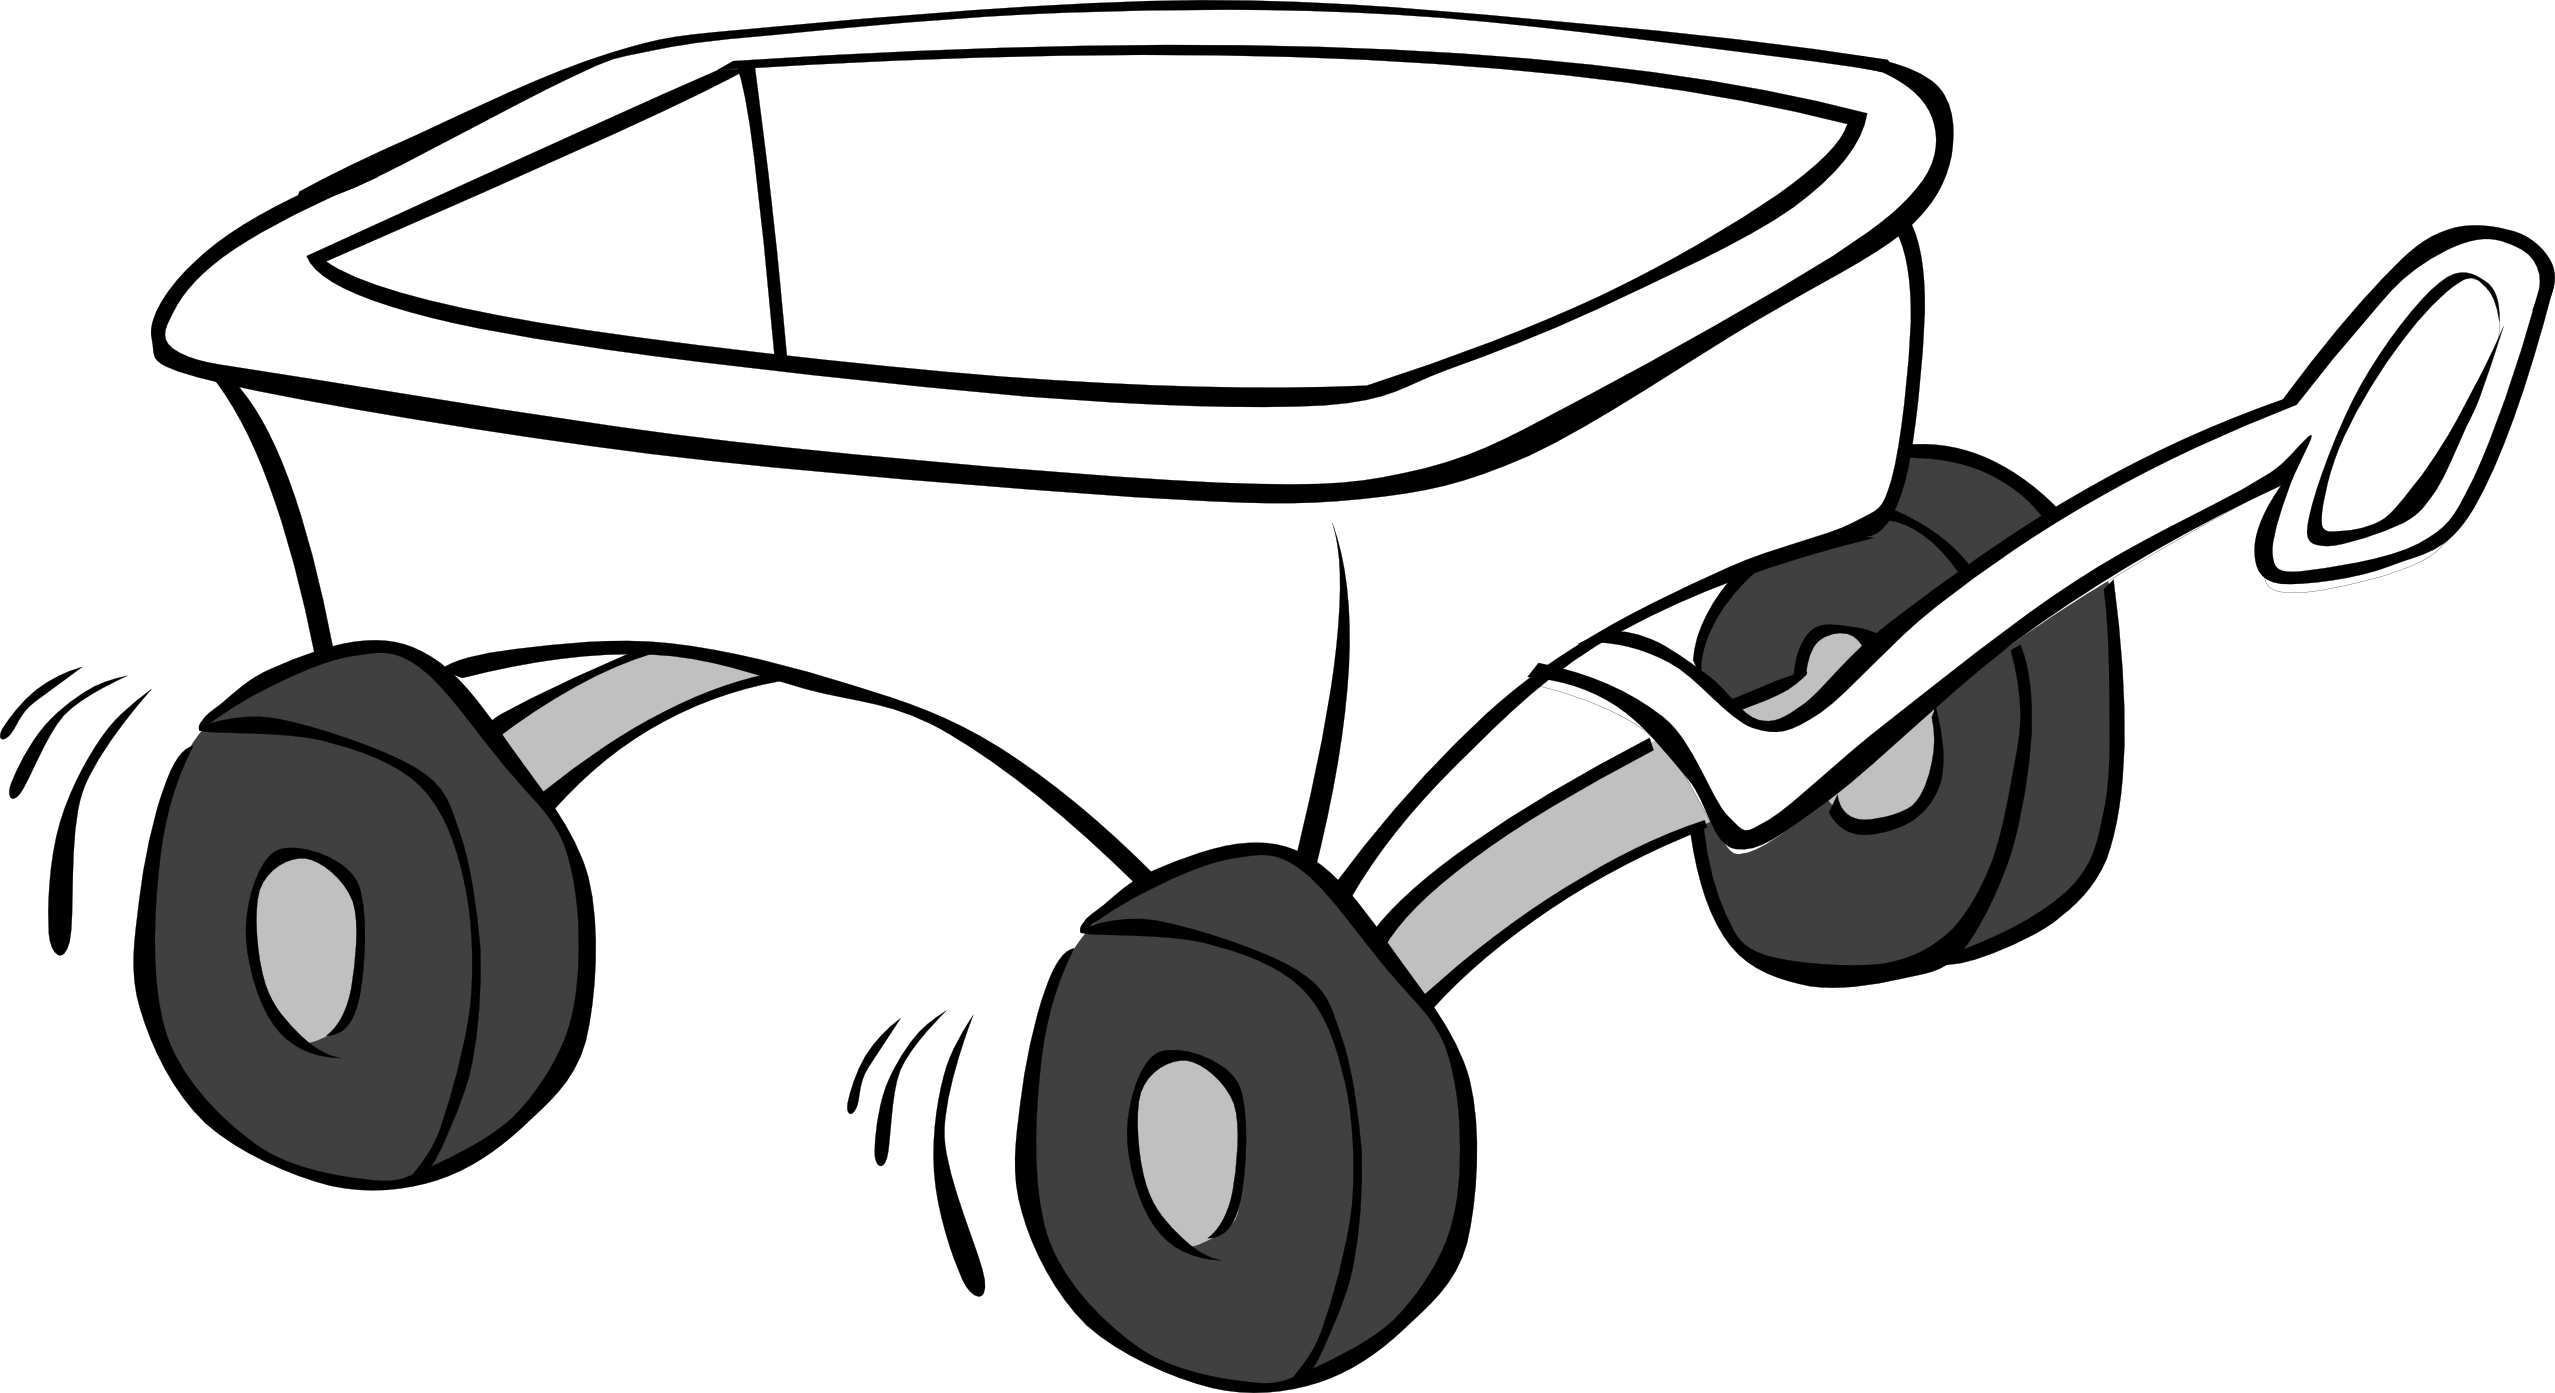 Ox clipart colouring page. Portfolio wagon coloring pages